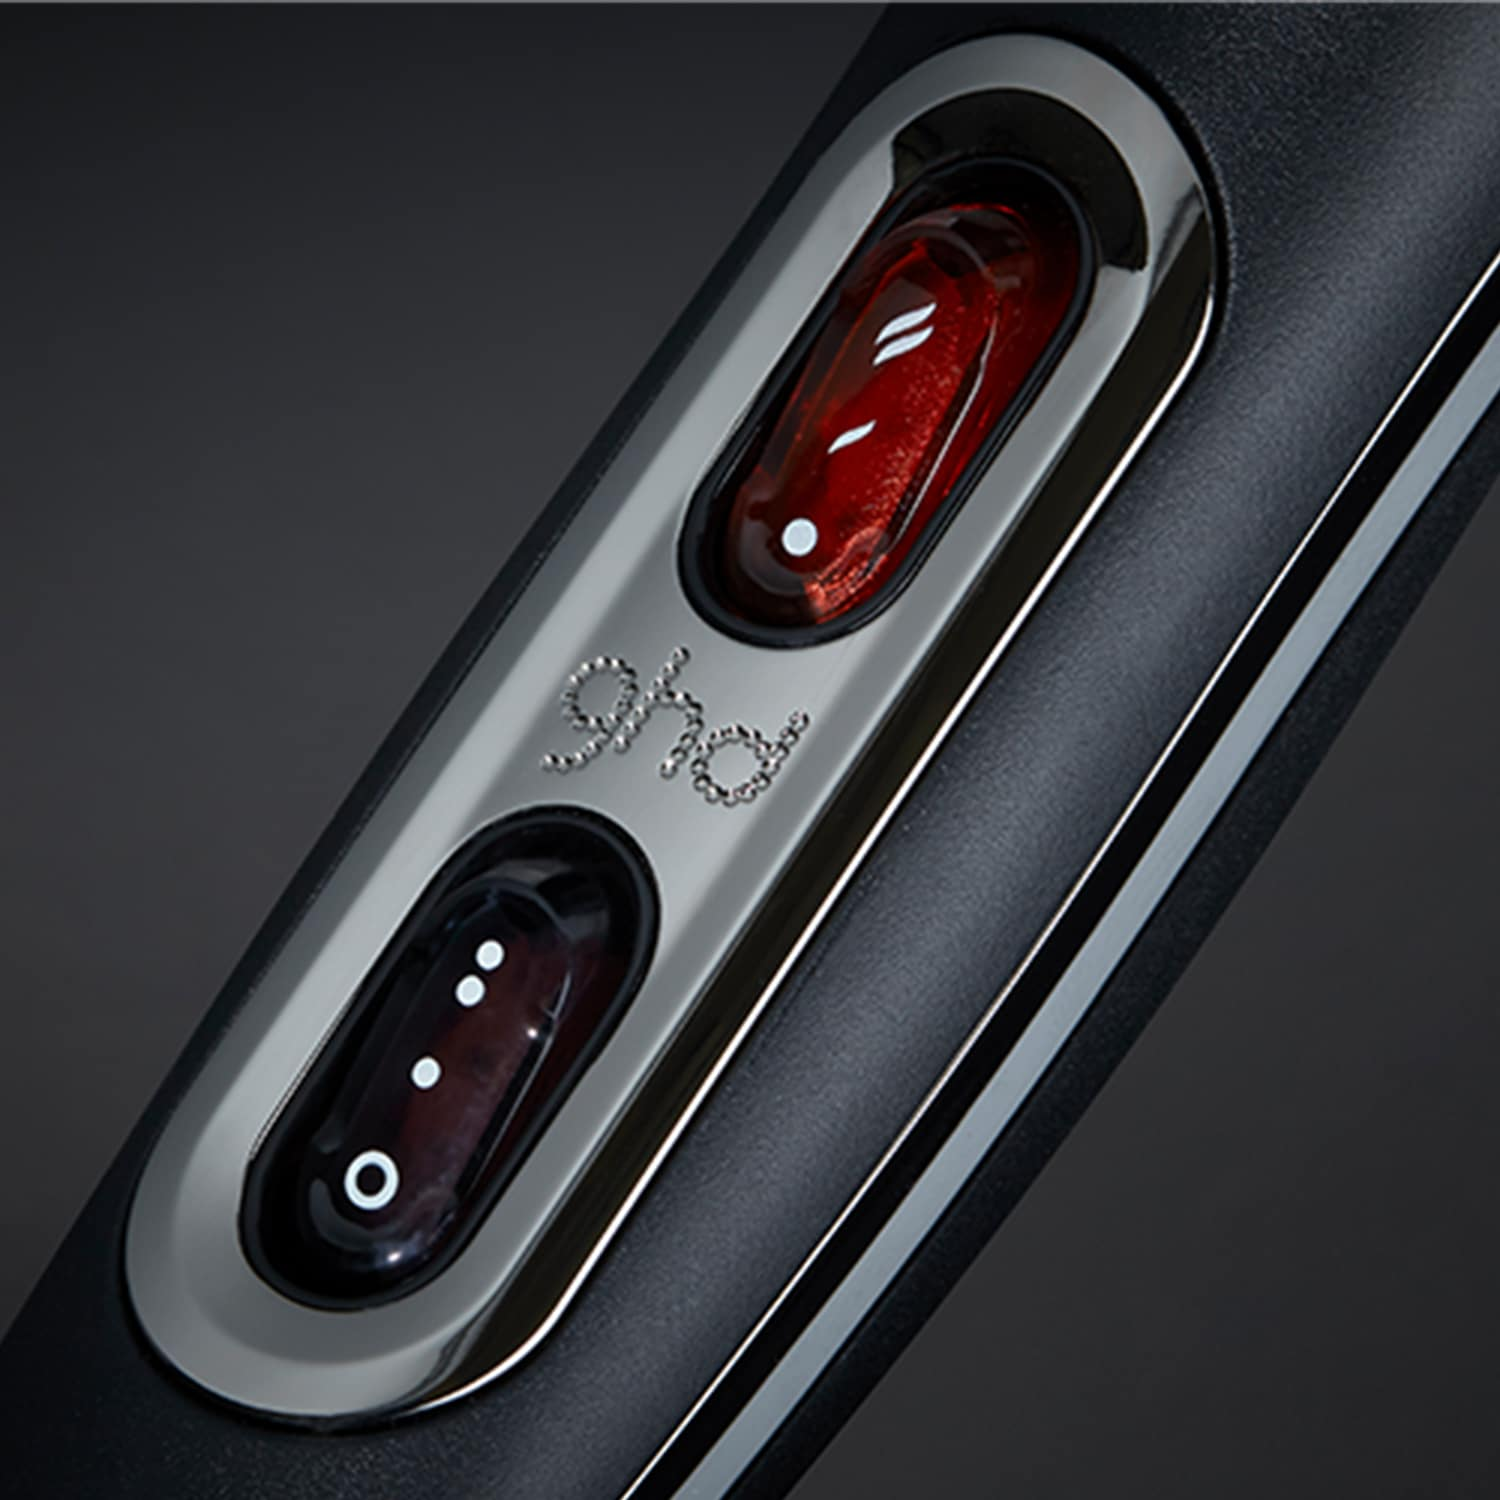 ghd air professional hair dryer buttons close-up